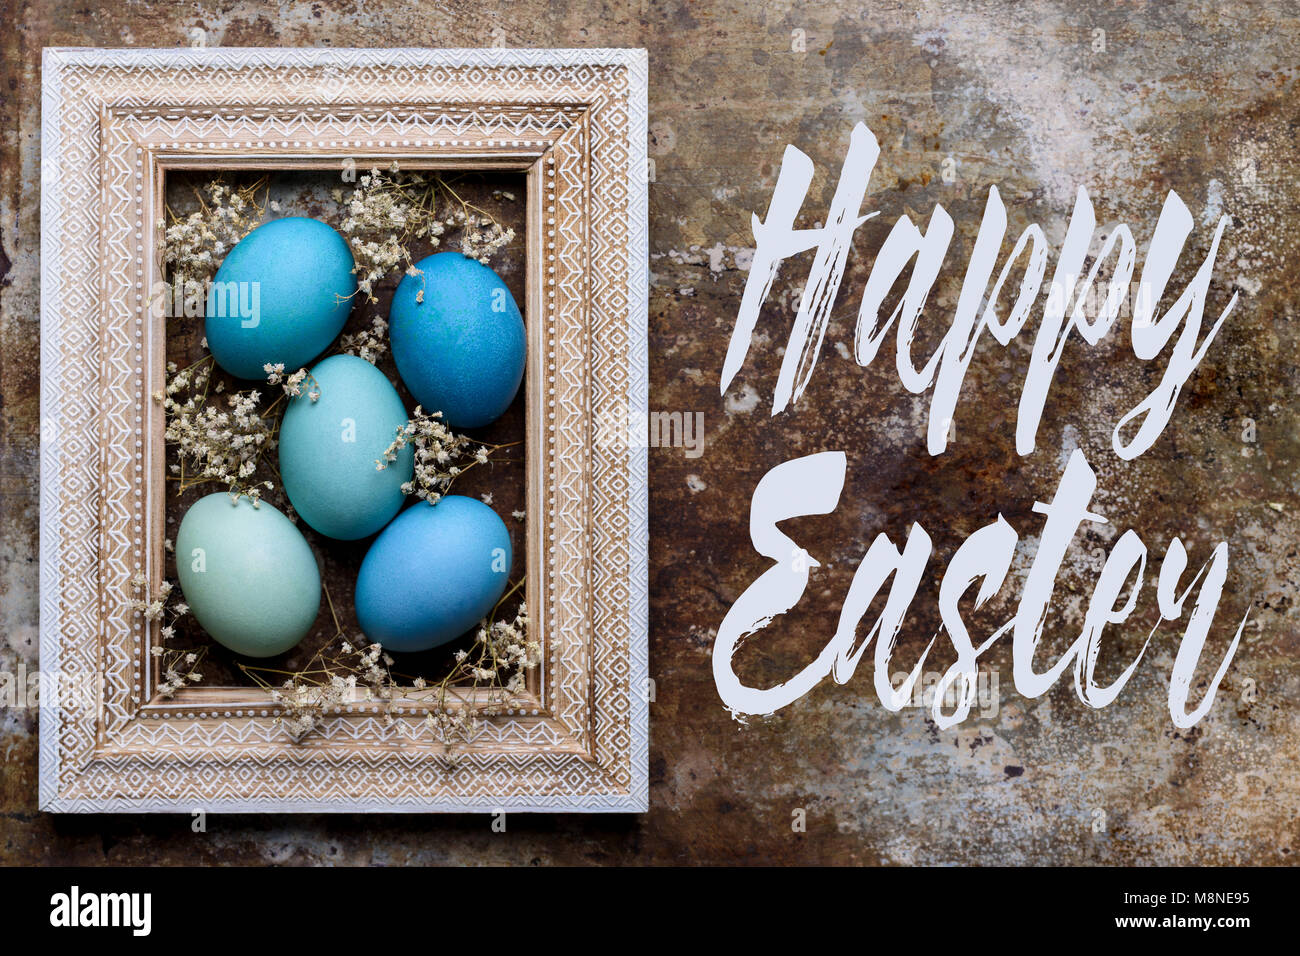 Happy Easter Rustic Background With Copy Space DIY Dyed Various Shades Of Blue Eggs And Vintage Wooden Picture Frame Mock Up